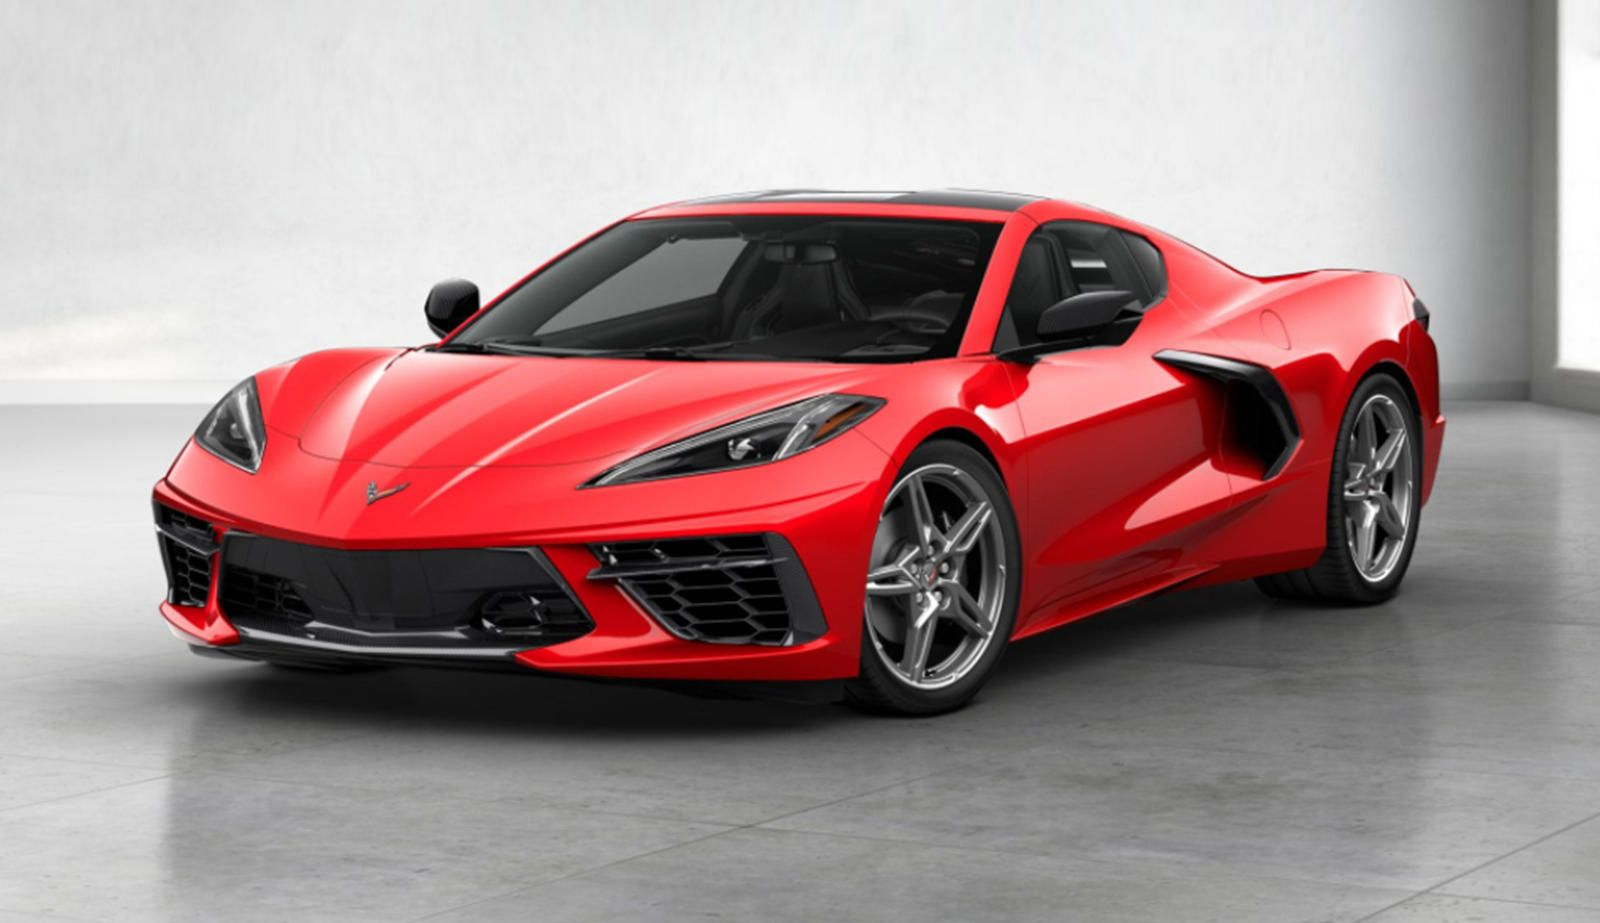 Corvette Stingray C8 Customers Won T Get The Car They Ordered Customers Who Wanted An Optional Corvette Stingray Chevrolet Corvette Corvette Stingray For Sale